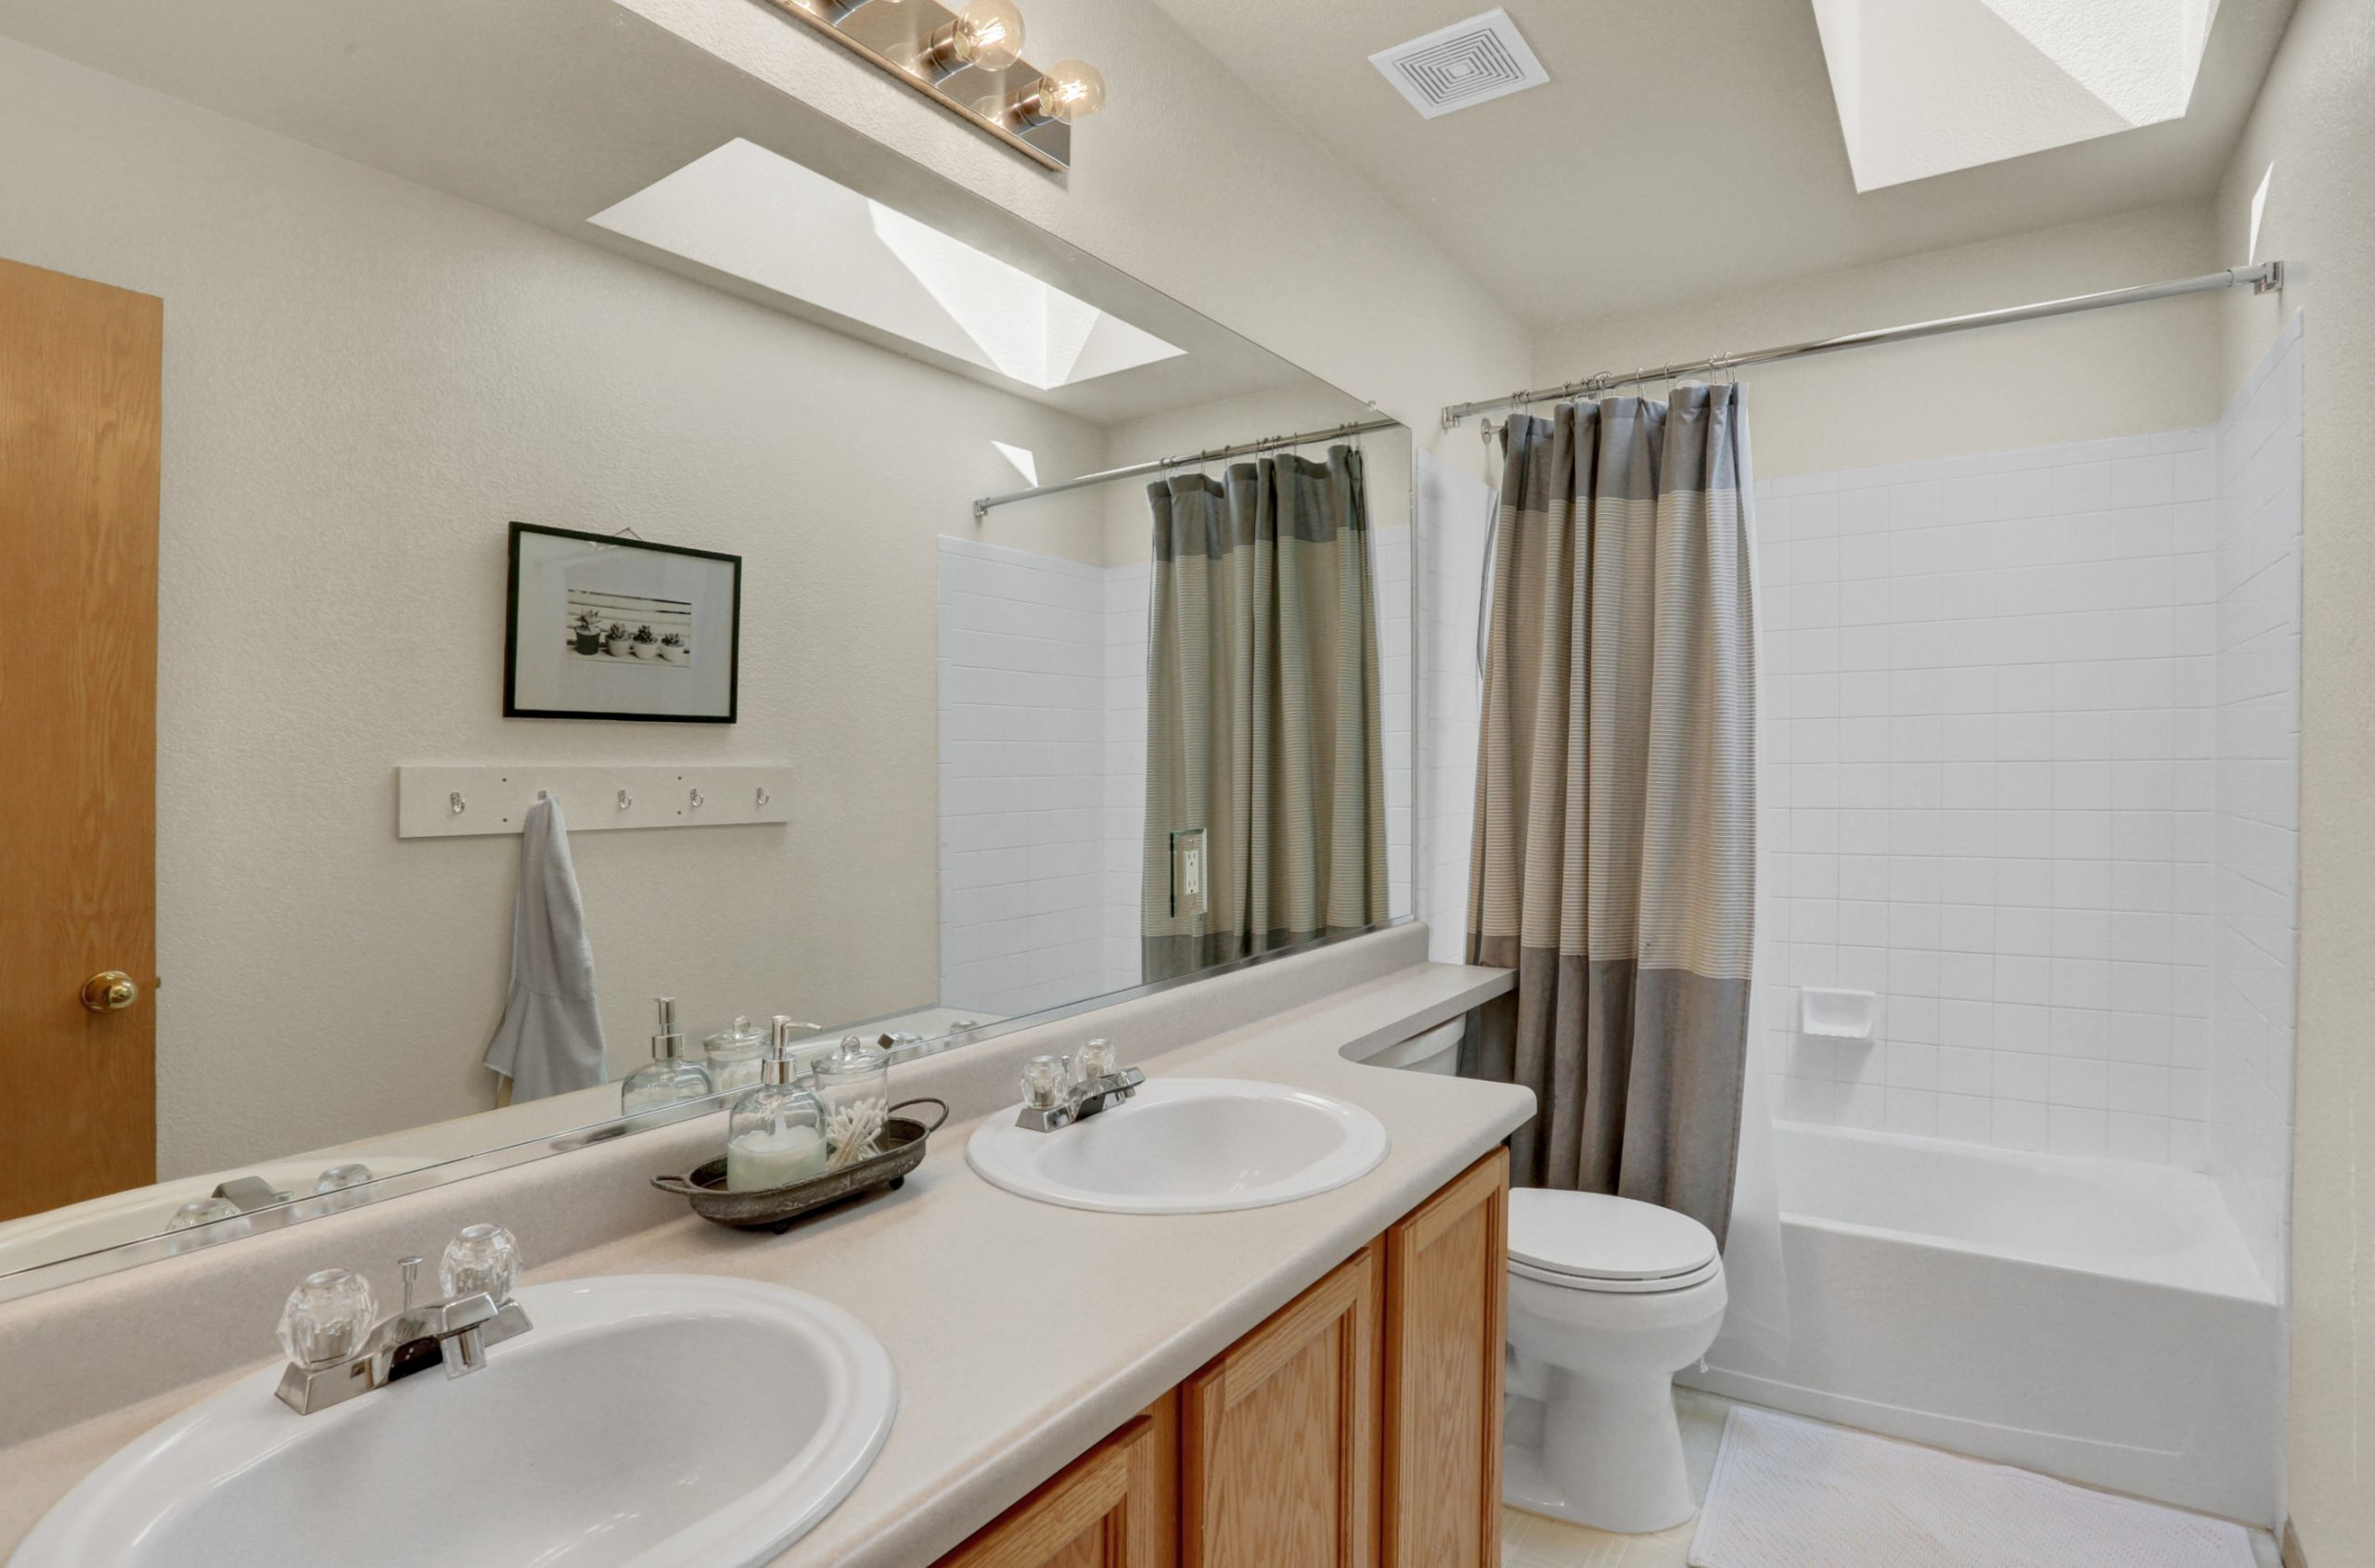 REAL ESTATE LISTING: 10502 Falcon St Firestone Shared Bath